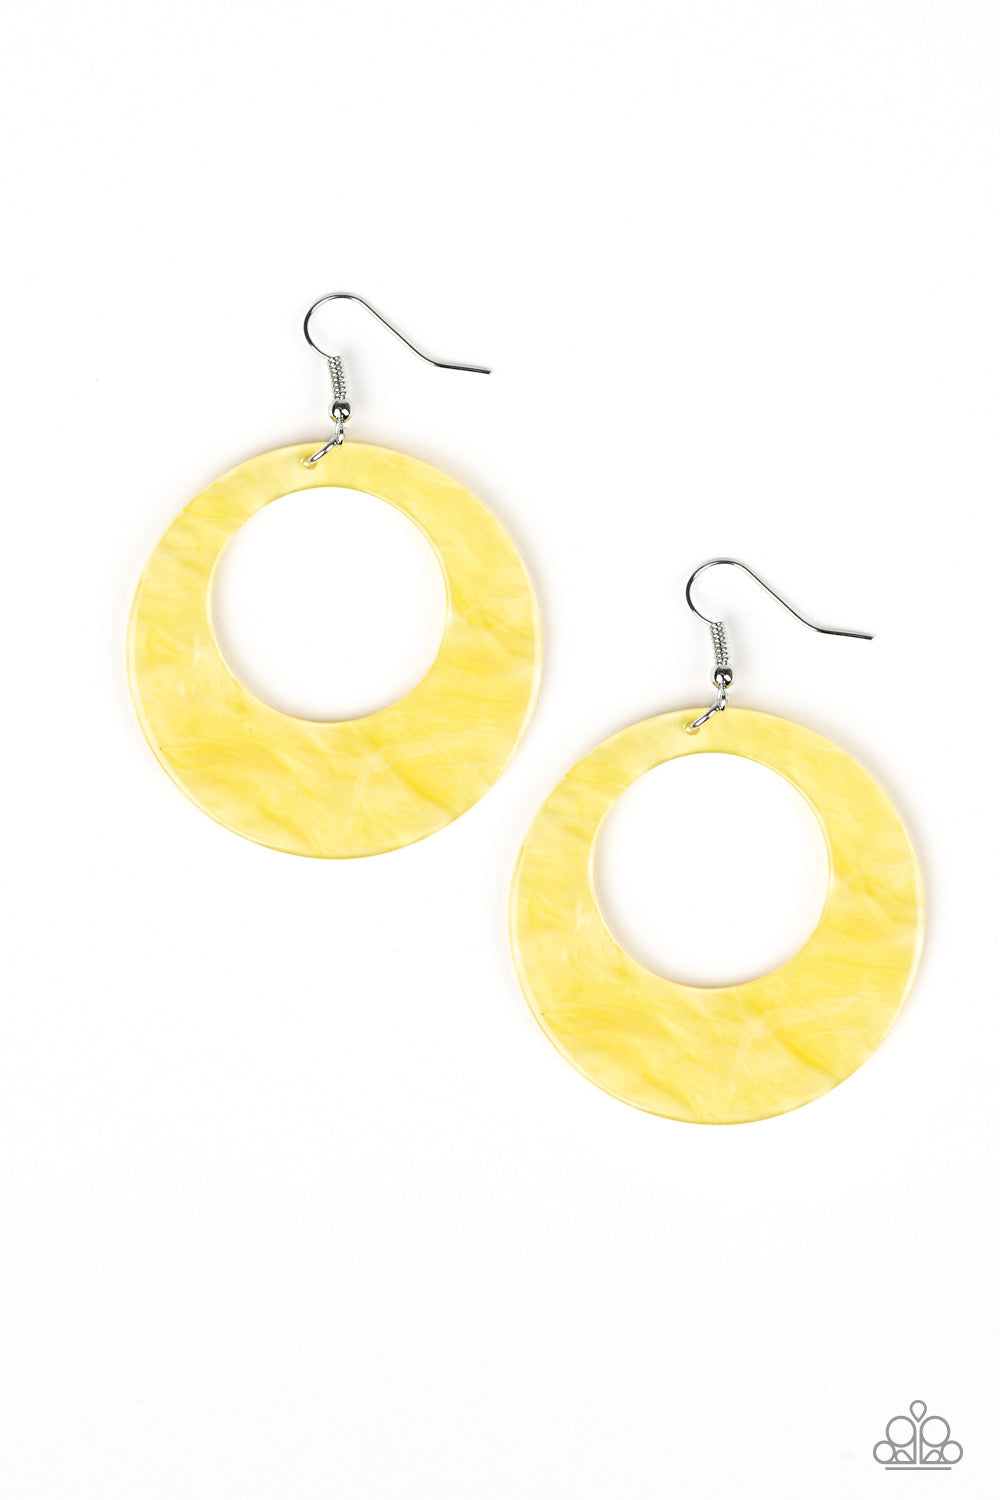 Paparazzi Accessories - Tropical Trailblazer - Yellow Earrings - JMJ Jewelry Collection